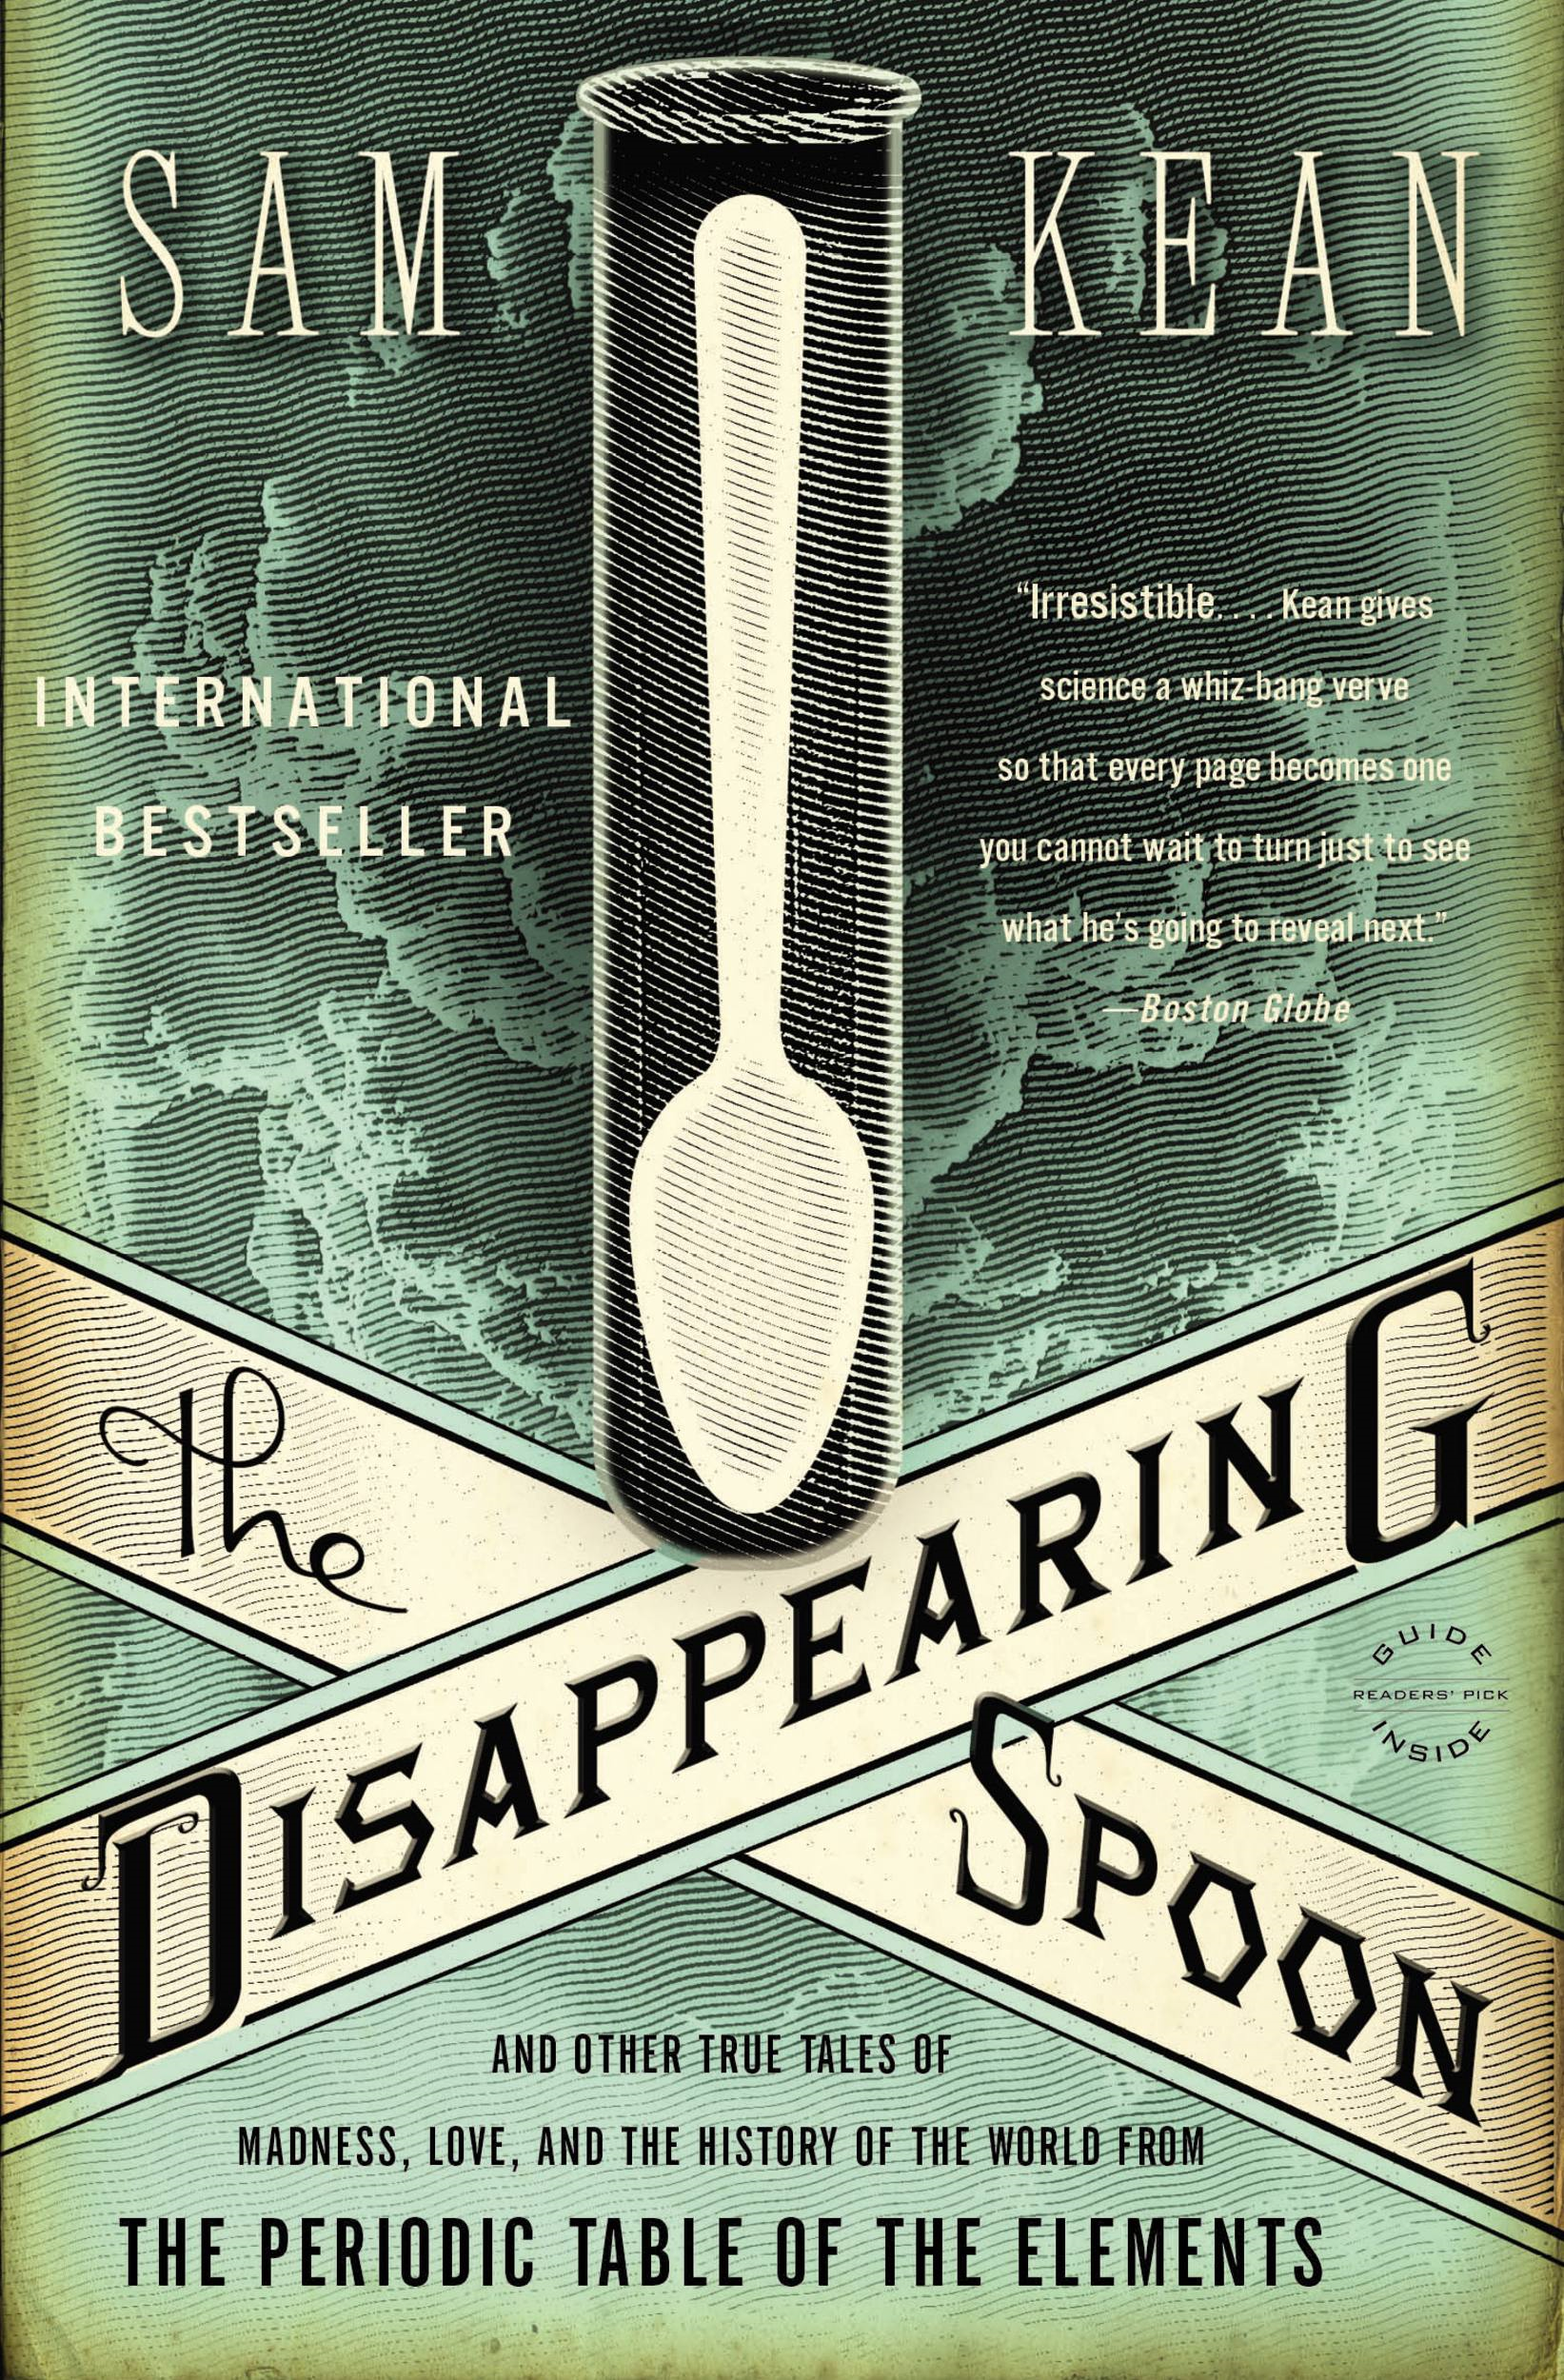 The Disappearing Spoon: And Other True Tales of Madness, Love, and the History of the World from the Periodic Table of the Elements By: Sam Kean